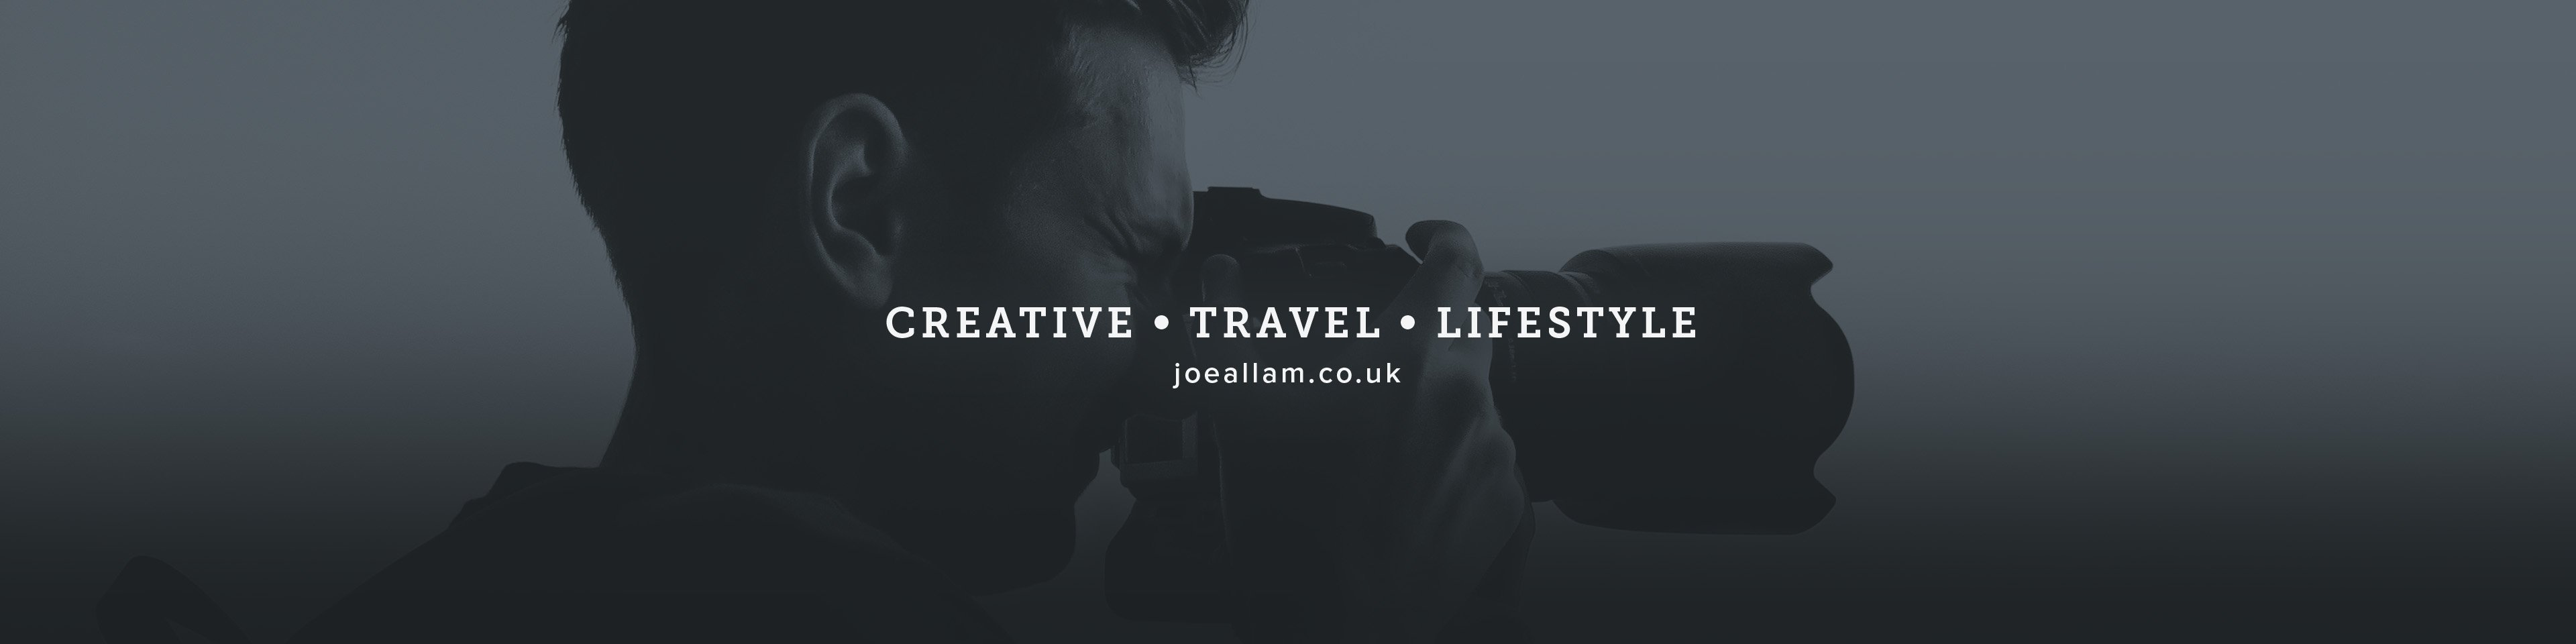 Creative • Travel • Lifestyle